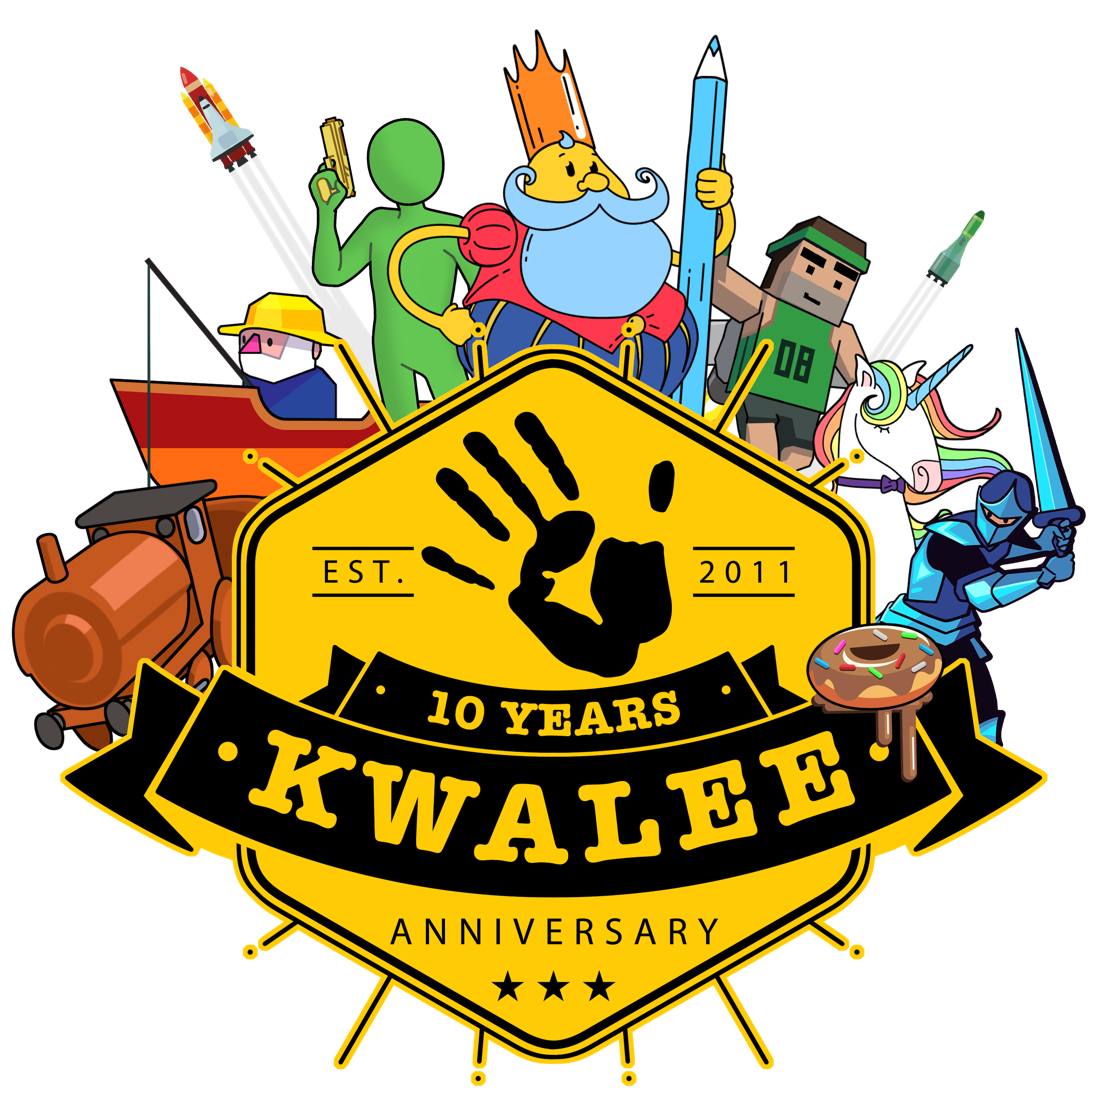 International games company marks 10 year anniversary with online celebration and big prizes for staff